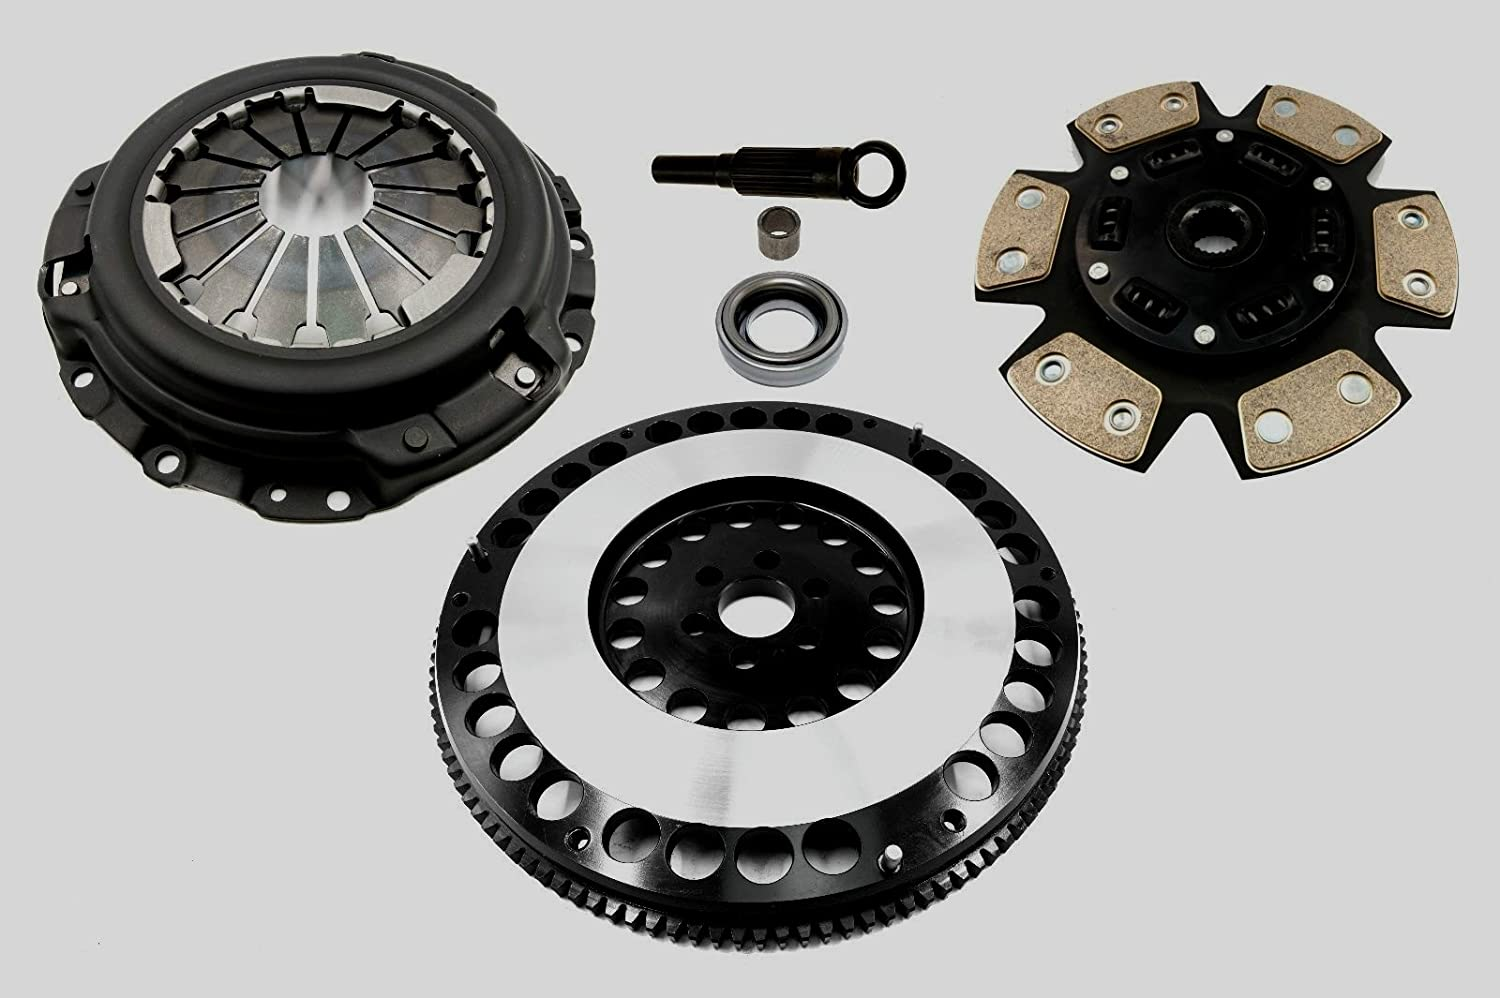 Clutch Kit Complete Set Stage 3 Racing Heavy Duty High Performance Kit & Flywheel 12LBS For Nissan 240SX KA24DE 2.4L Automotive Clutch Pressure Plates ...